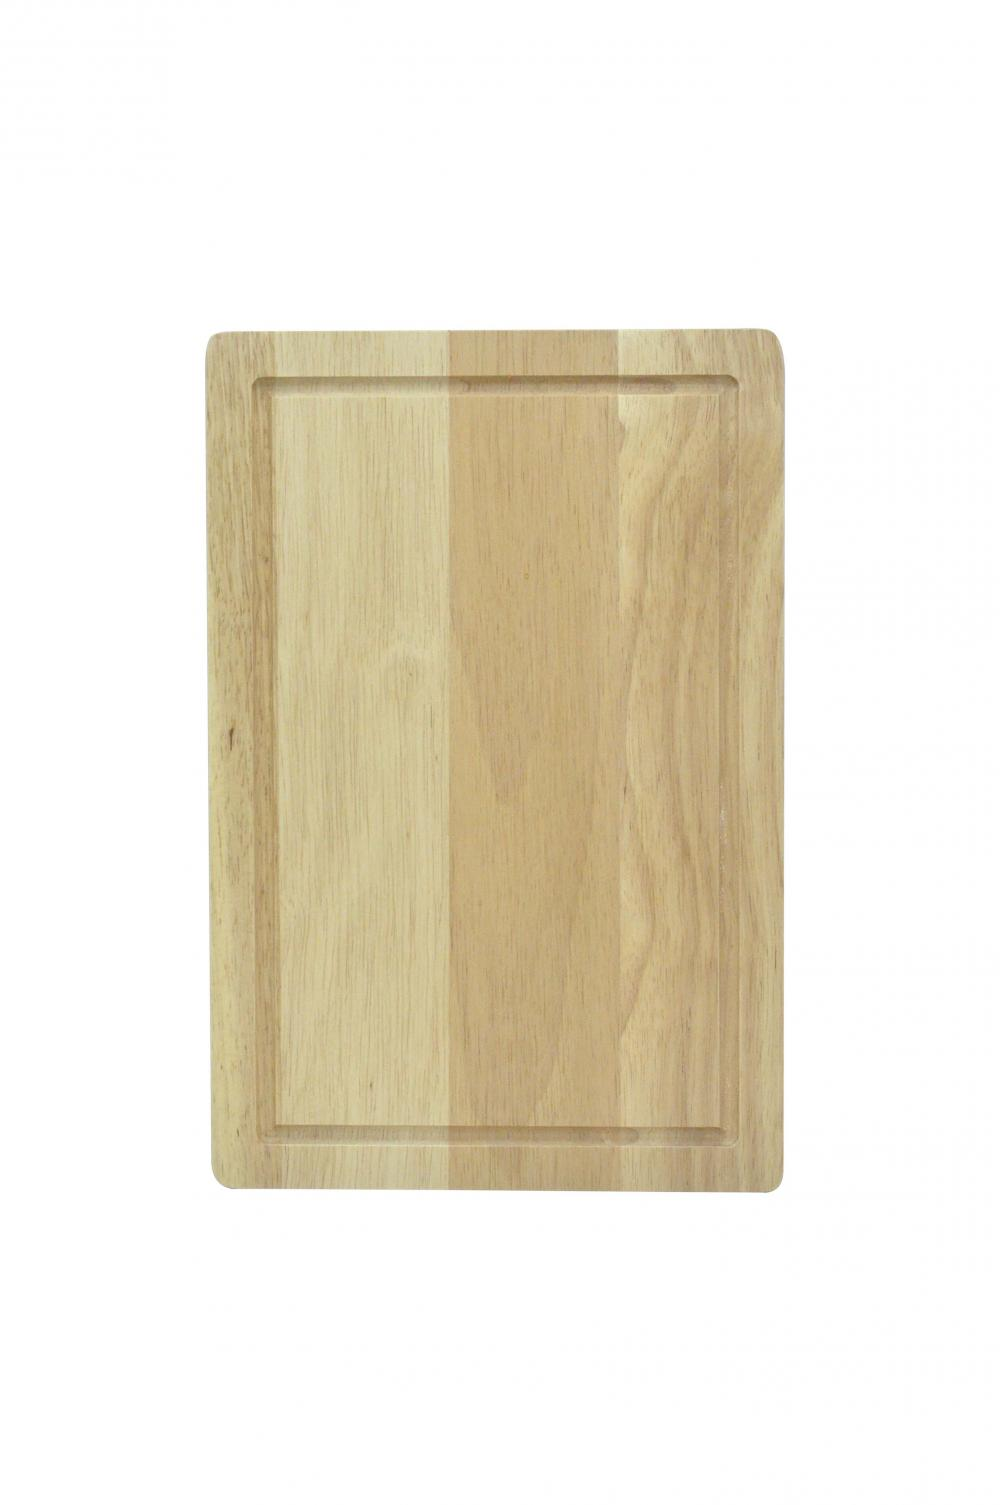 Wood Seving Board